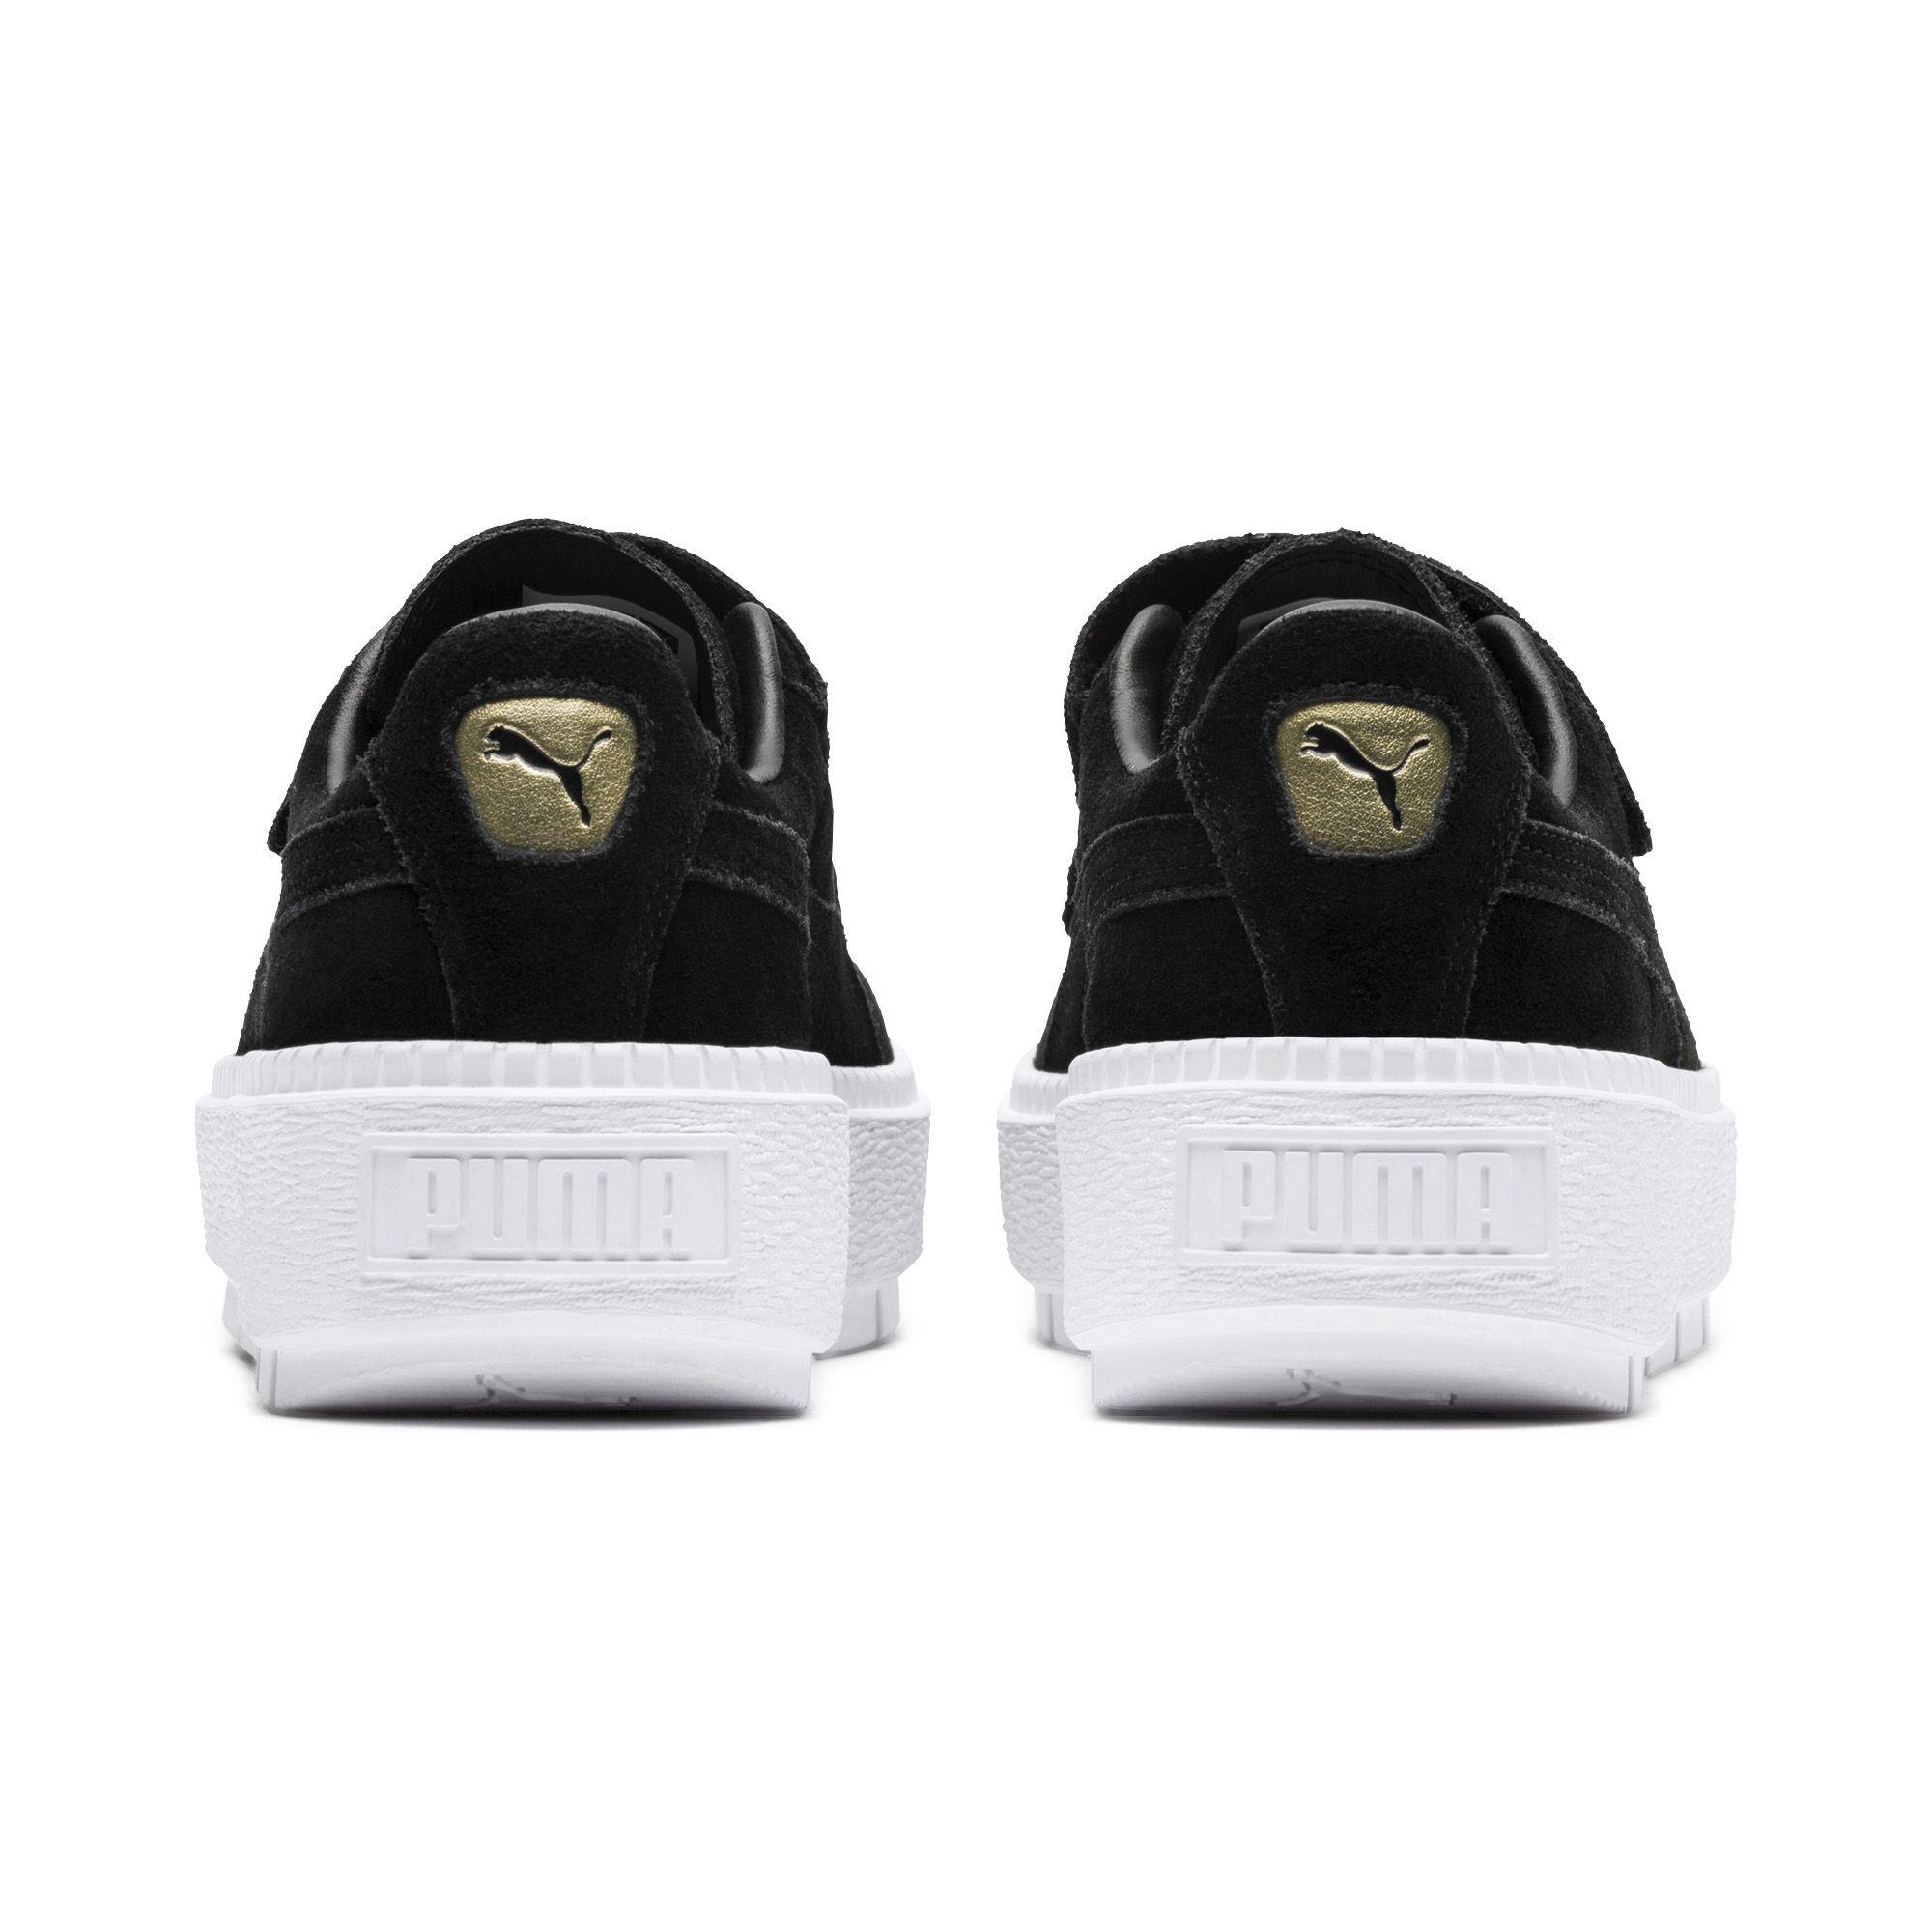 cheap for discount 9efbb f6920 PUMA Platform Trace Strap Women's Sneakers in Black - Lyst